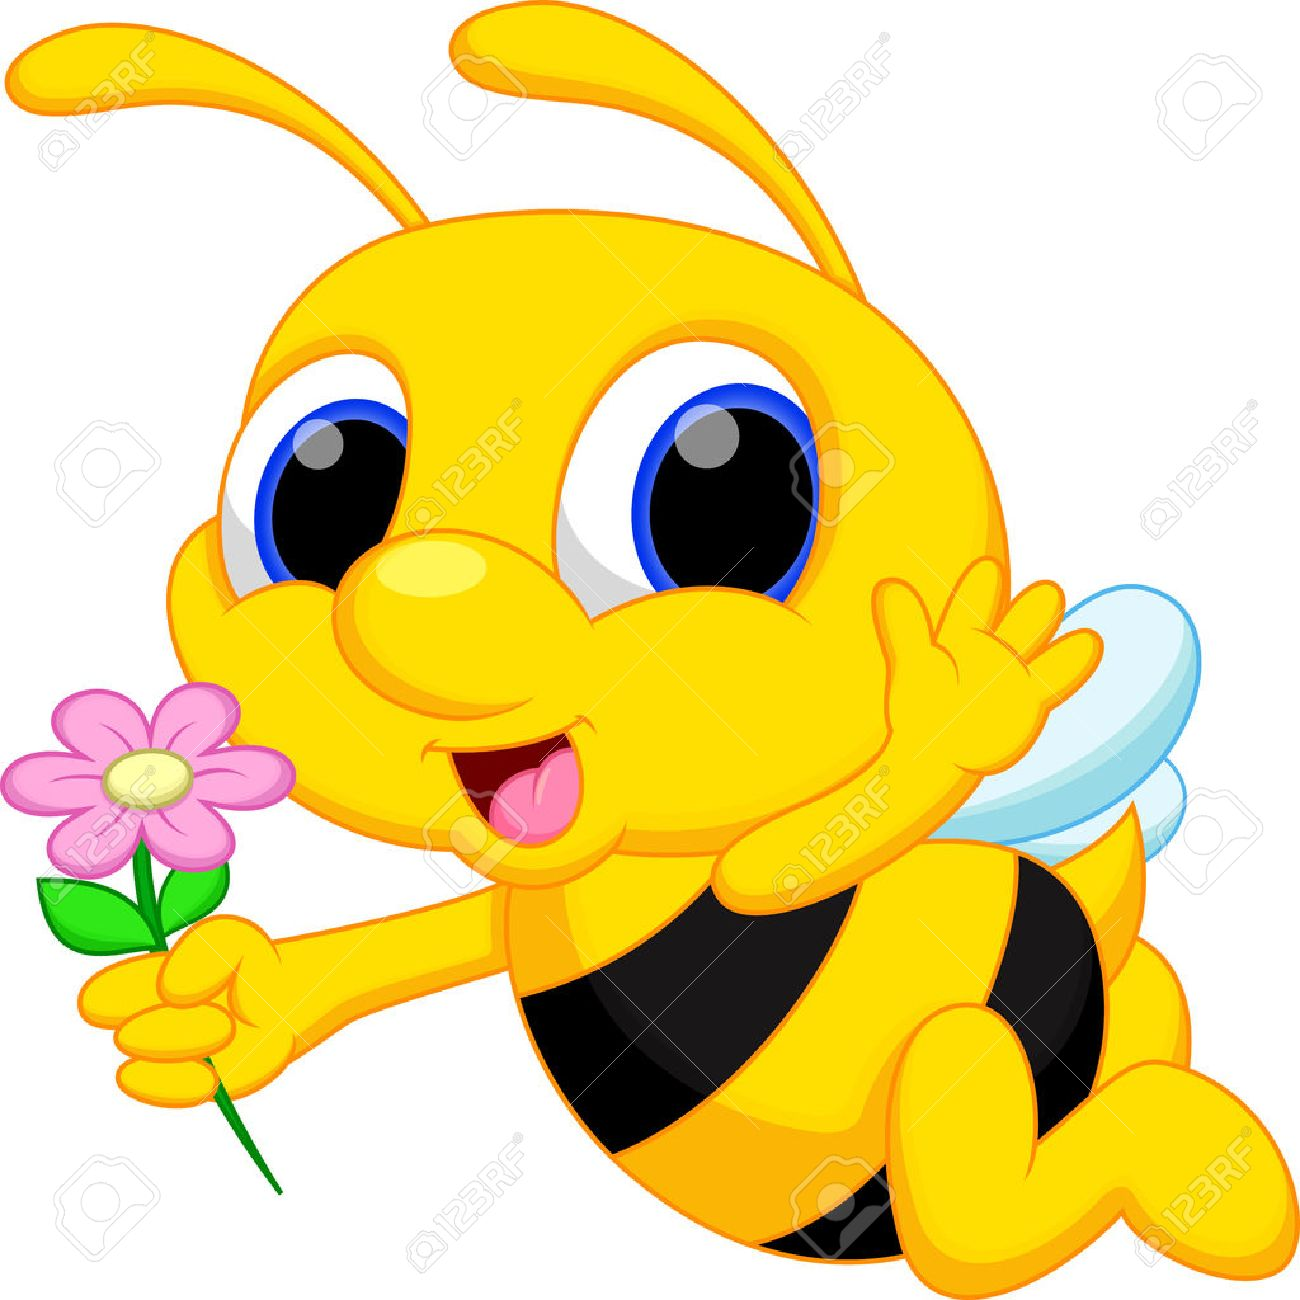 cute bee cartoon flying while carrying flowers royalty free